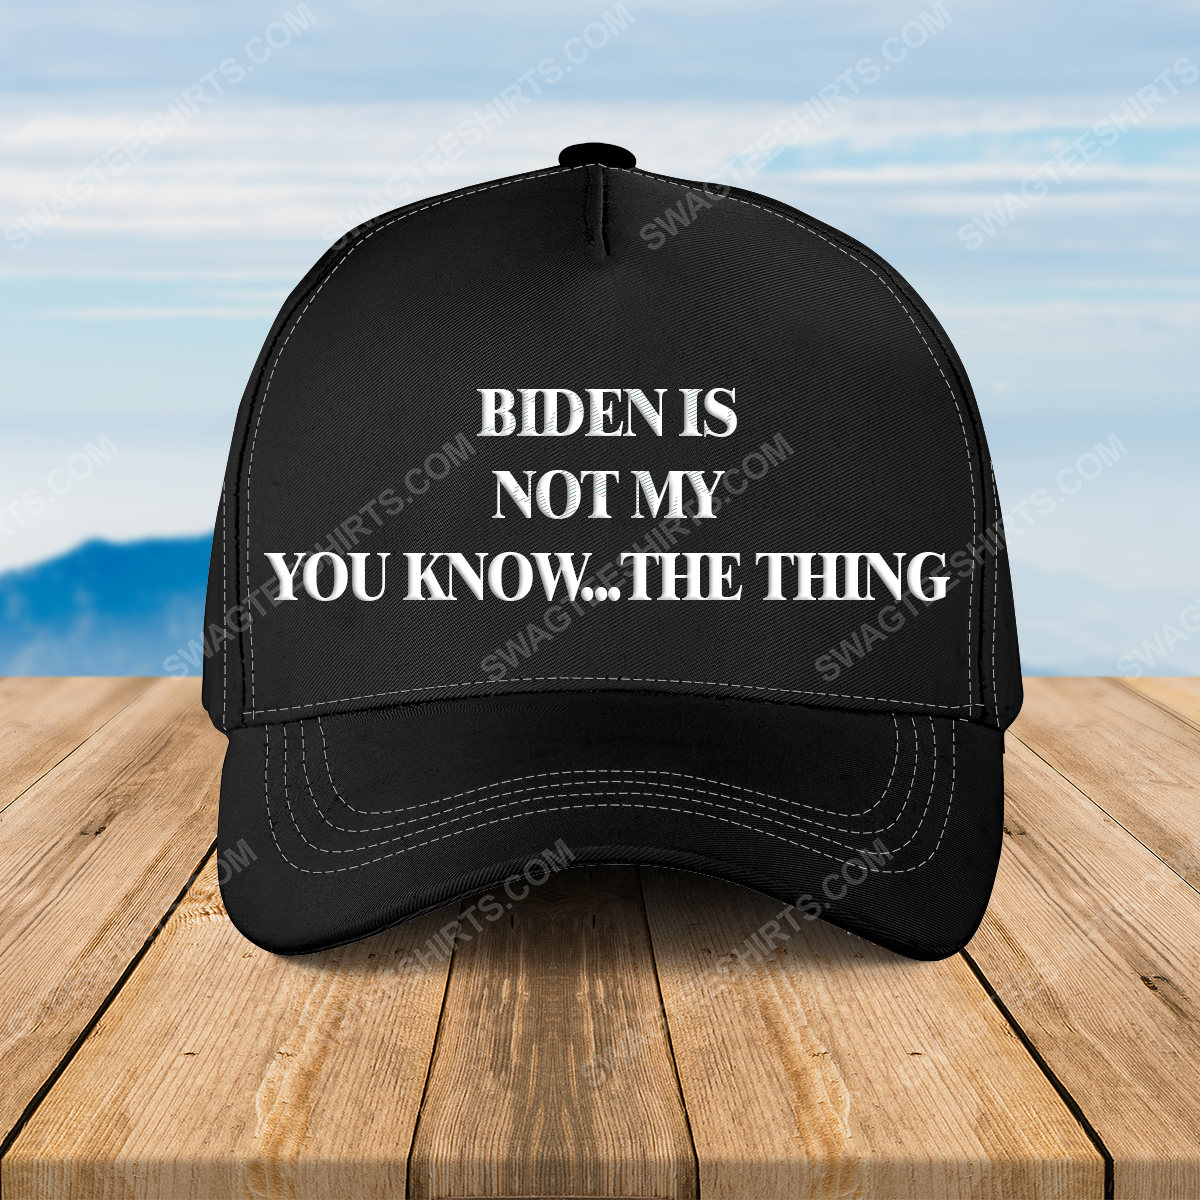 Biden is not my you know the thing full print classic hat 1